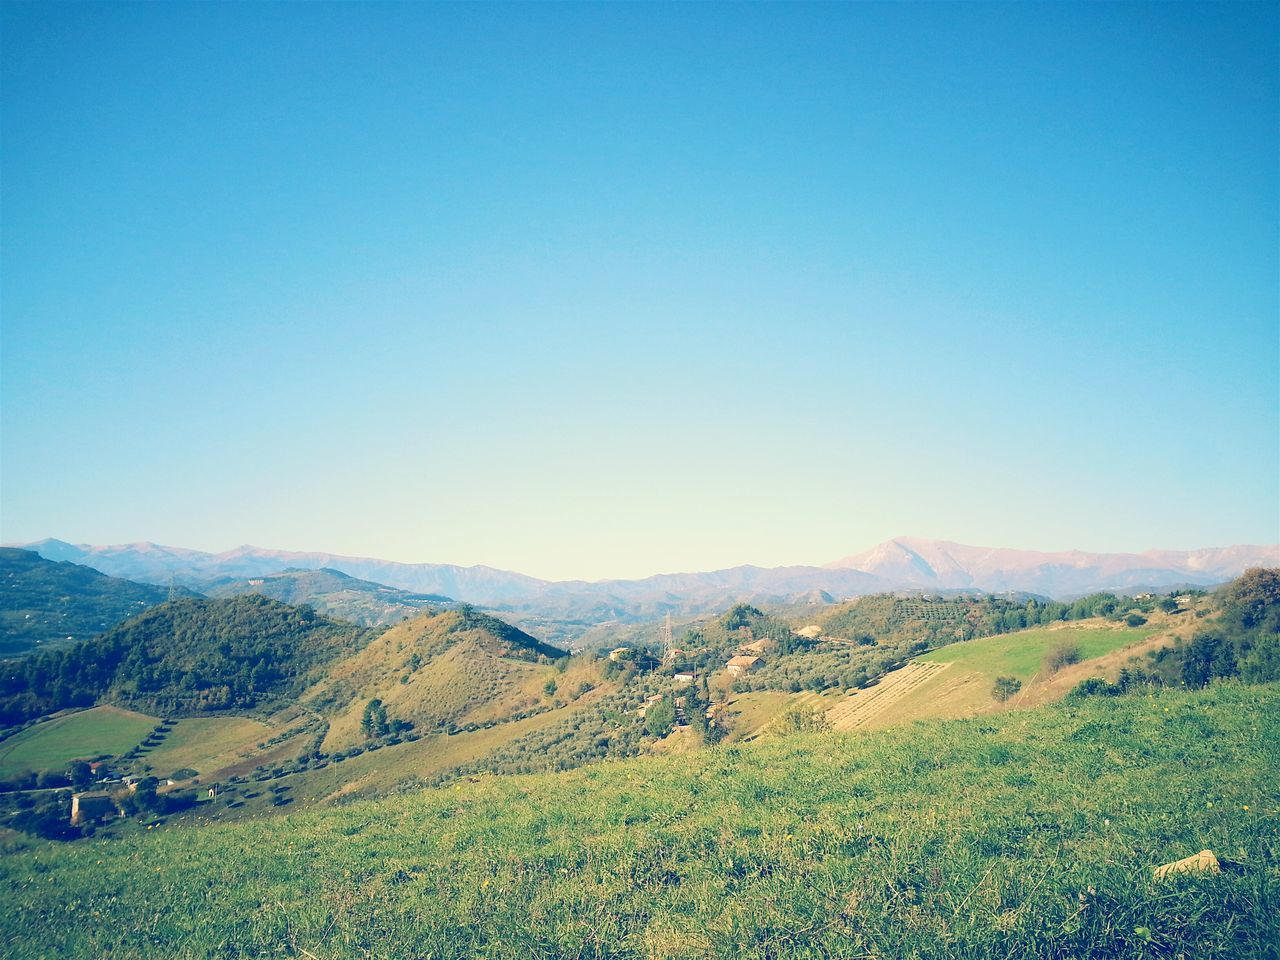 landscape, nature, beauty in nature, tranquil scene, scenics, field, mountain, tranquility, blue, copy space, rural scene, grass, no people, clear sky, agriculture, outdoors, mountain range, day, sky